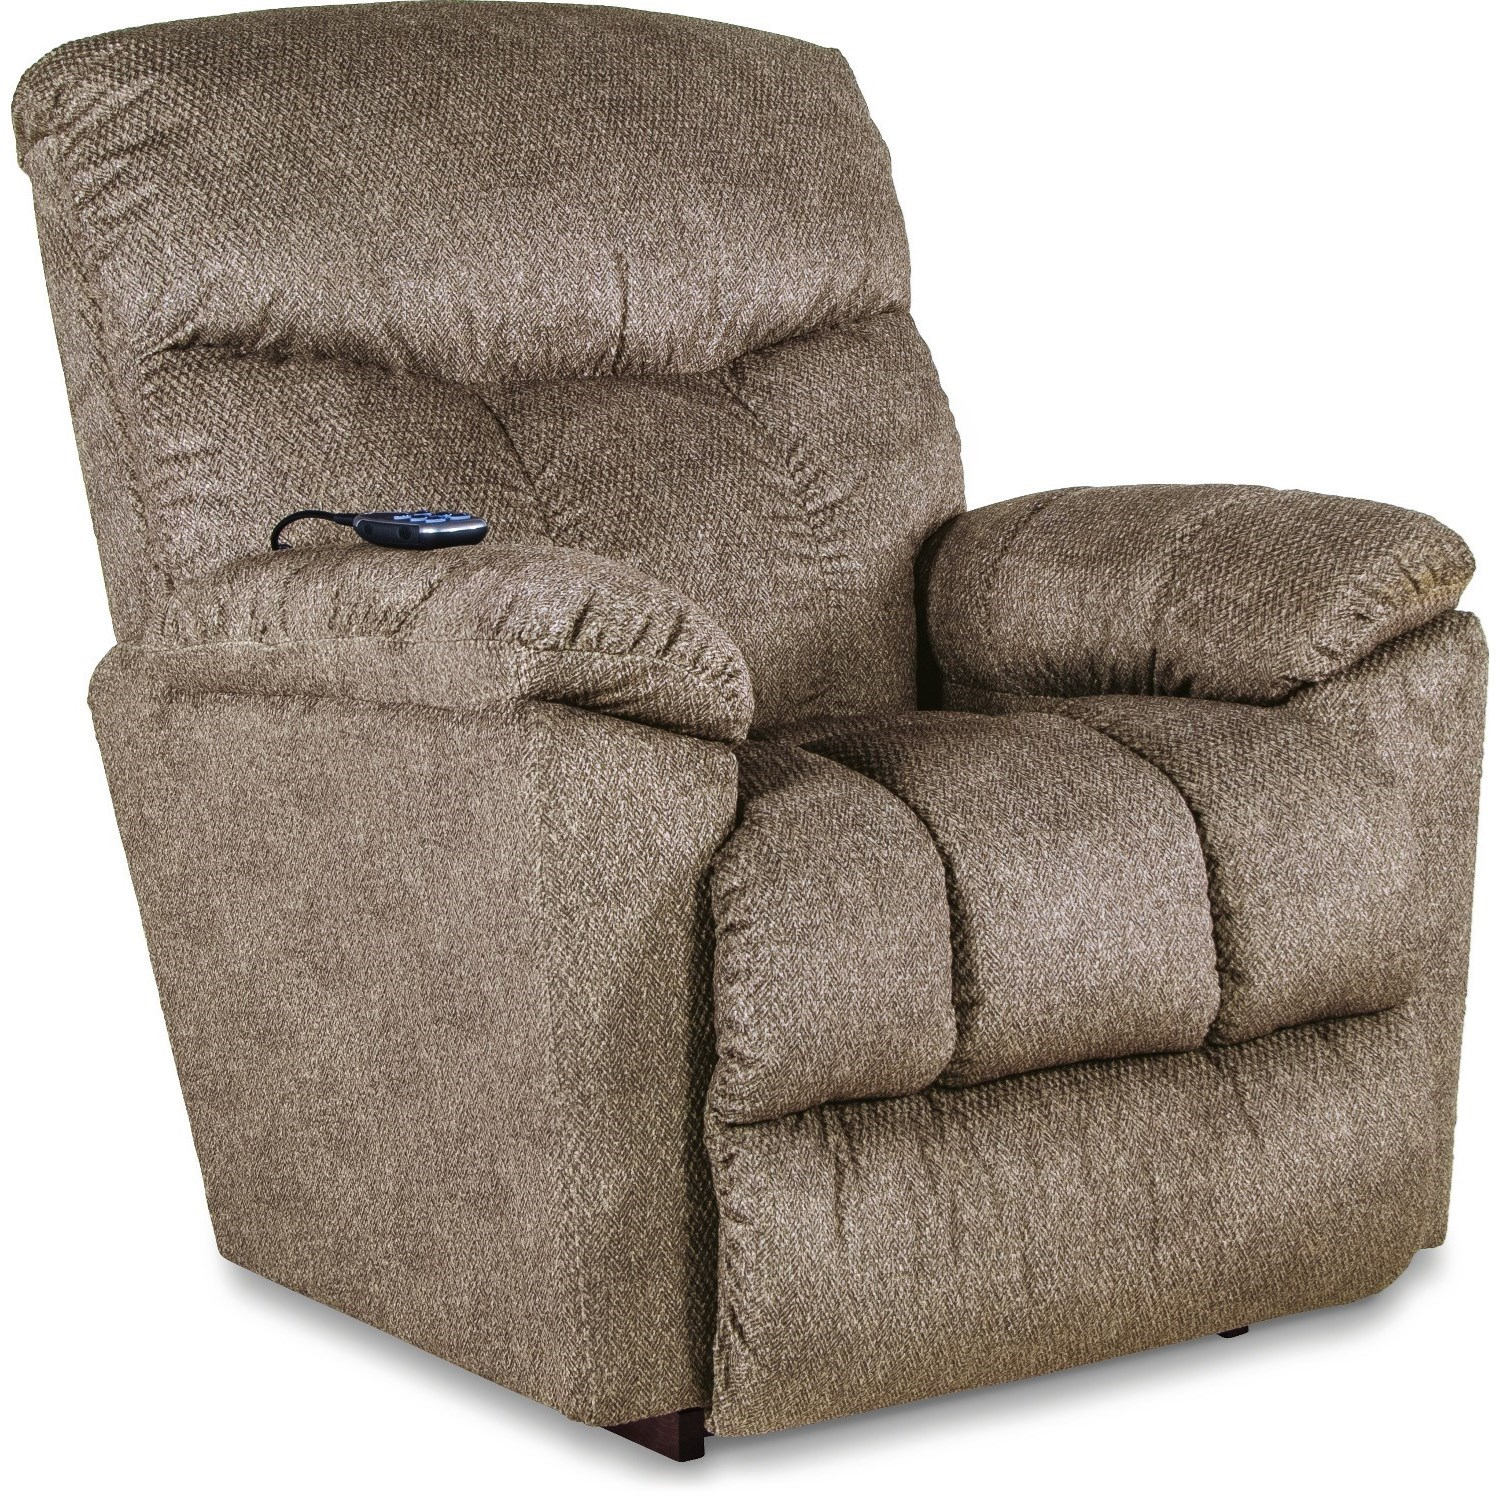 Morrison Power Wall Recliner w/ Headrest by La-Z-Boy at Bullard Furniture